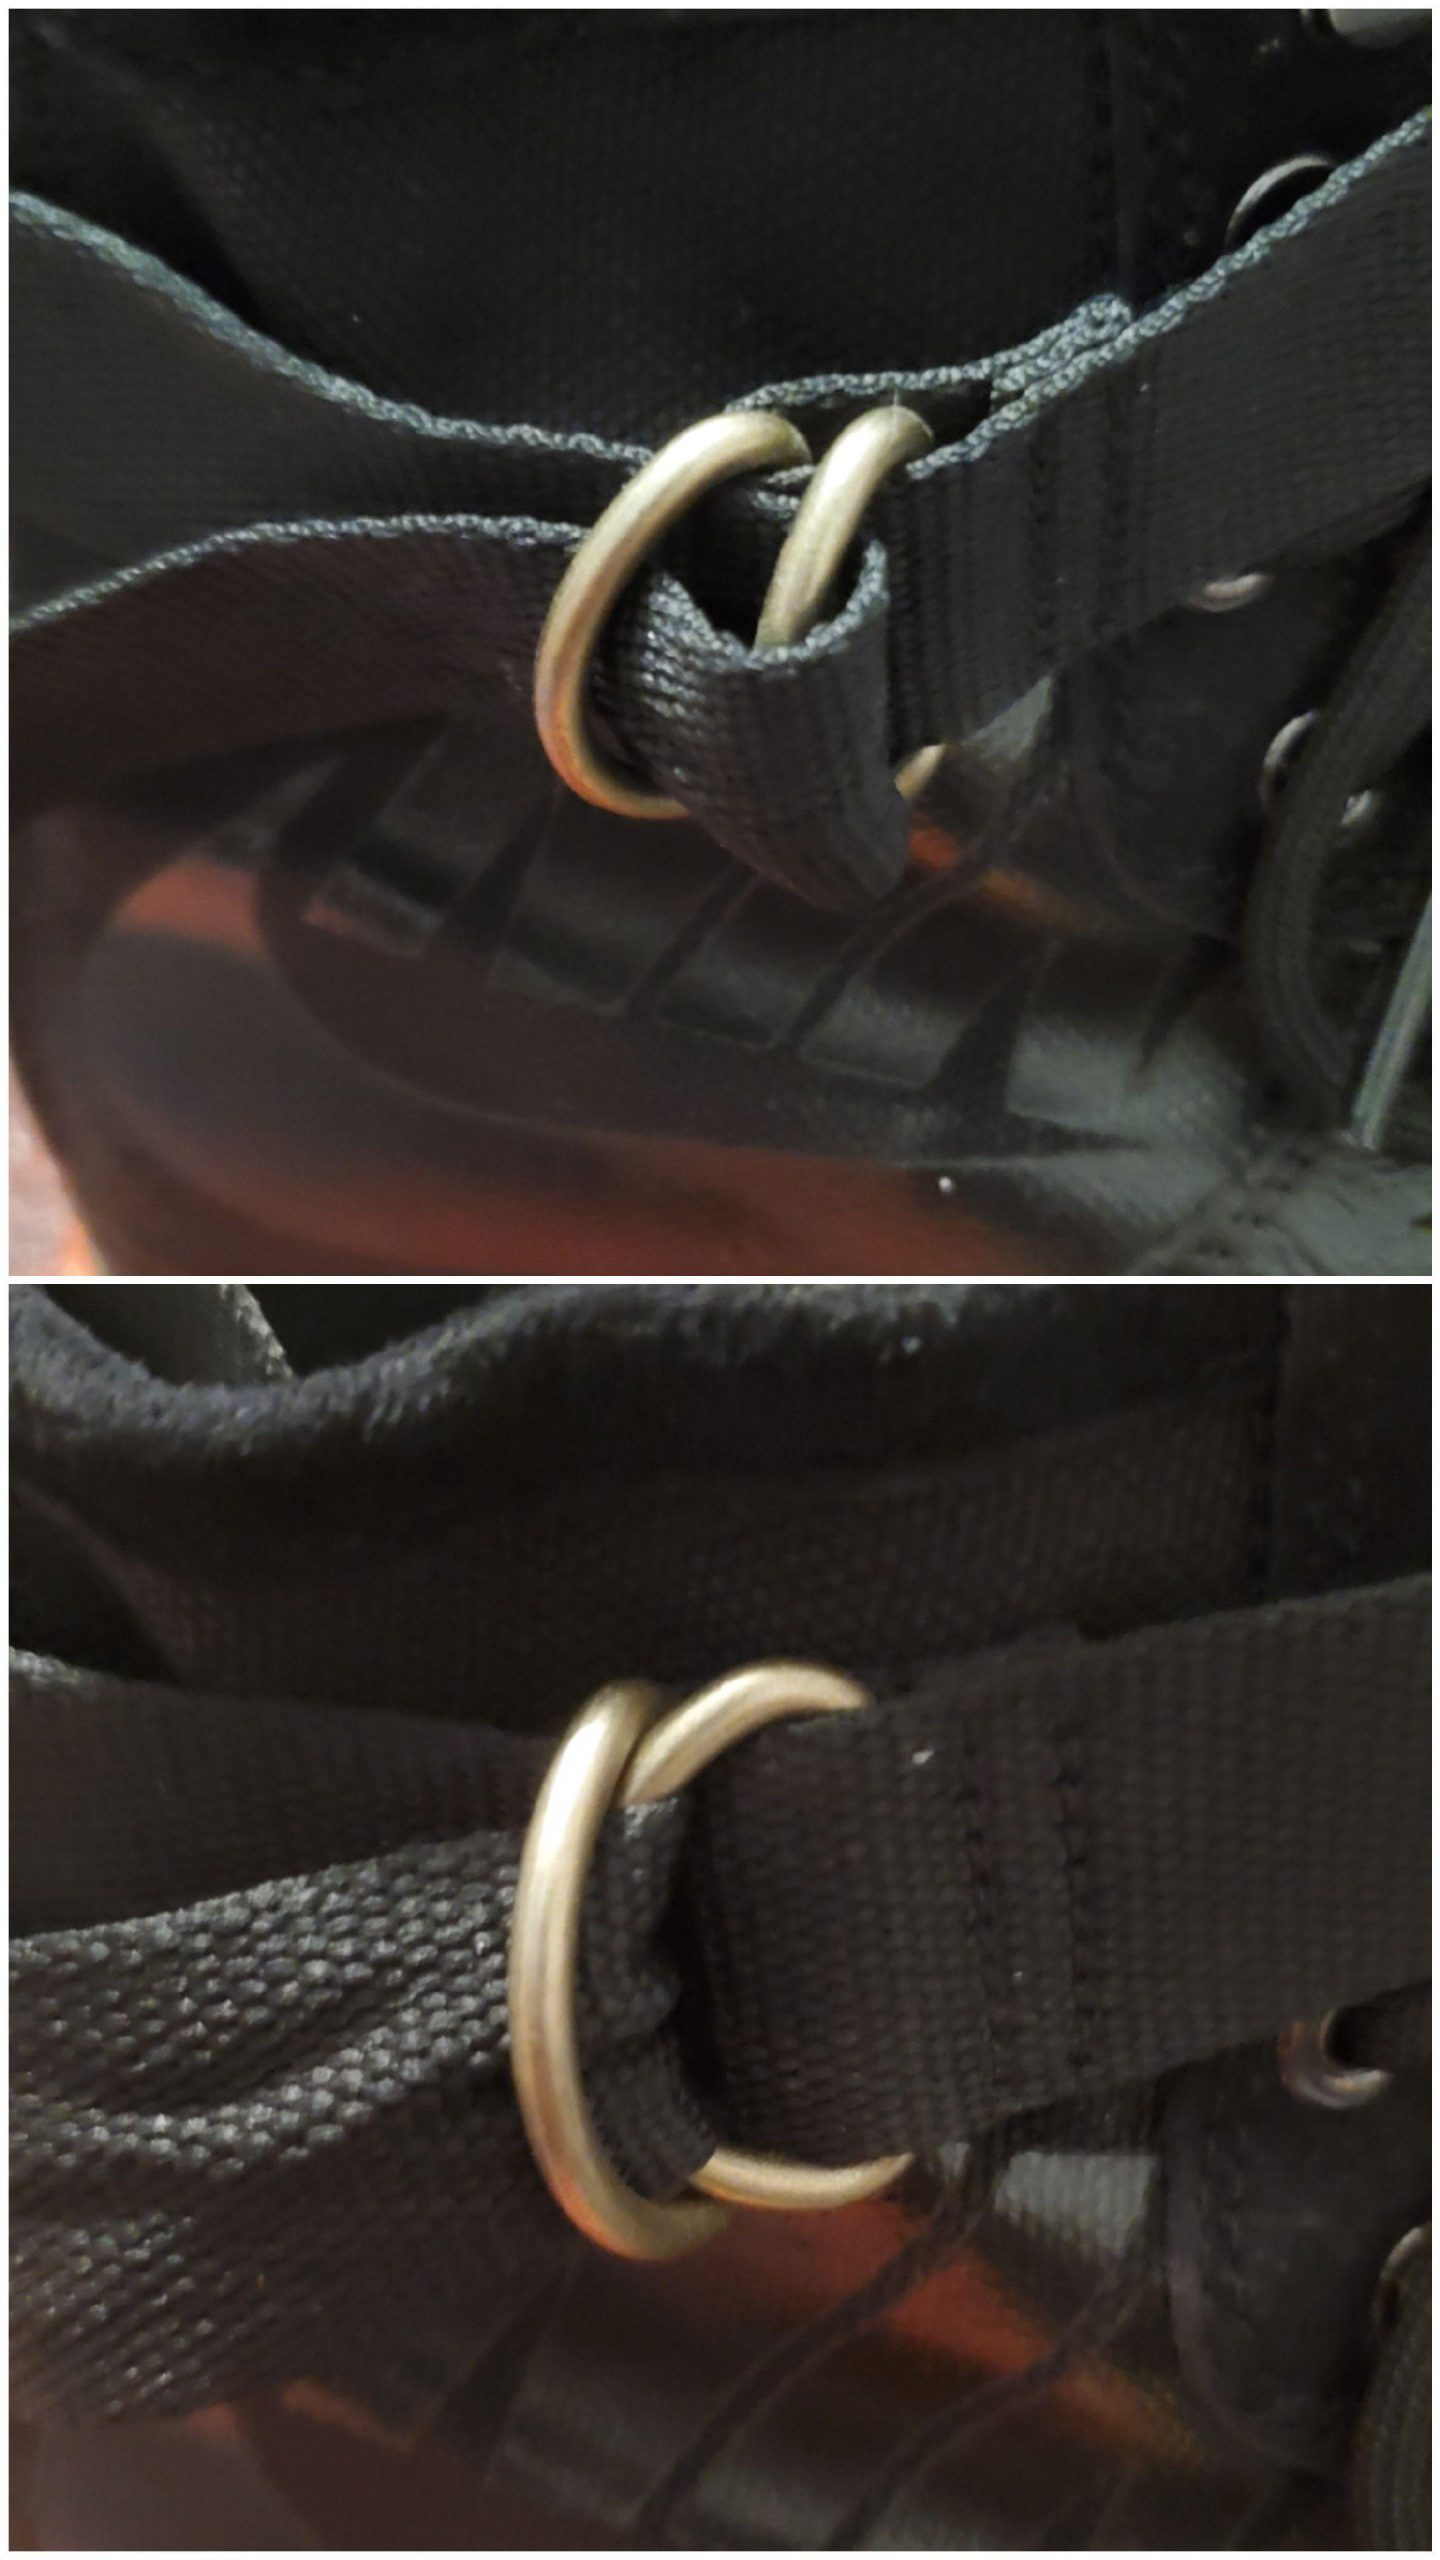 hxldctxhppg51 scaled - Am I tightening this belt correctly? Its on my shoe and slowly loosens when I walk. - home, hobbies